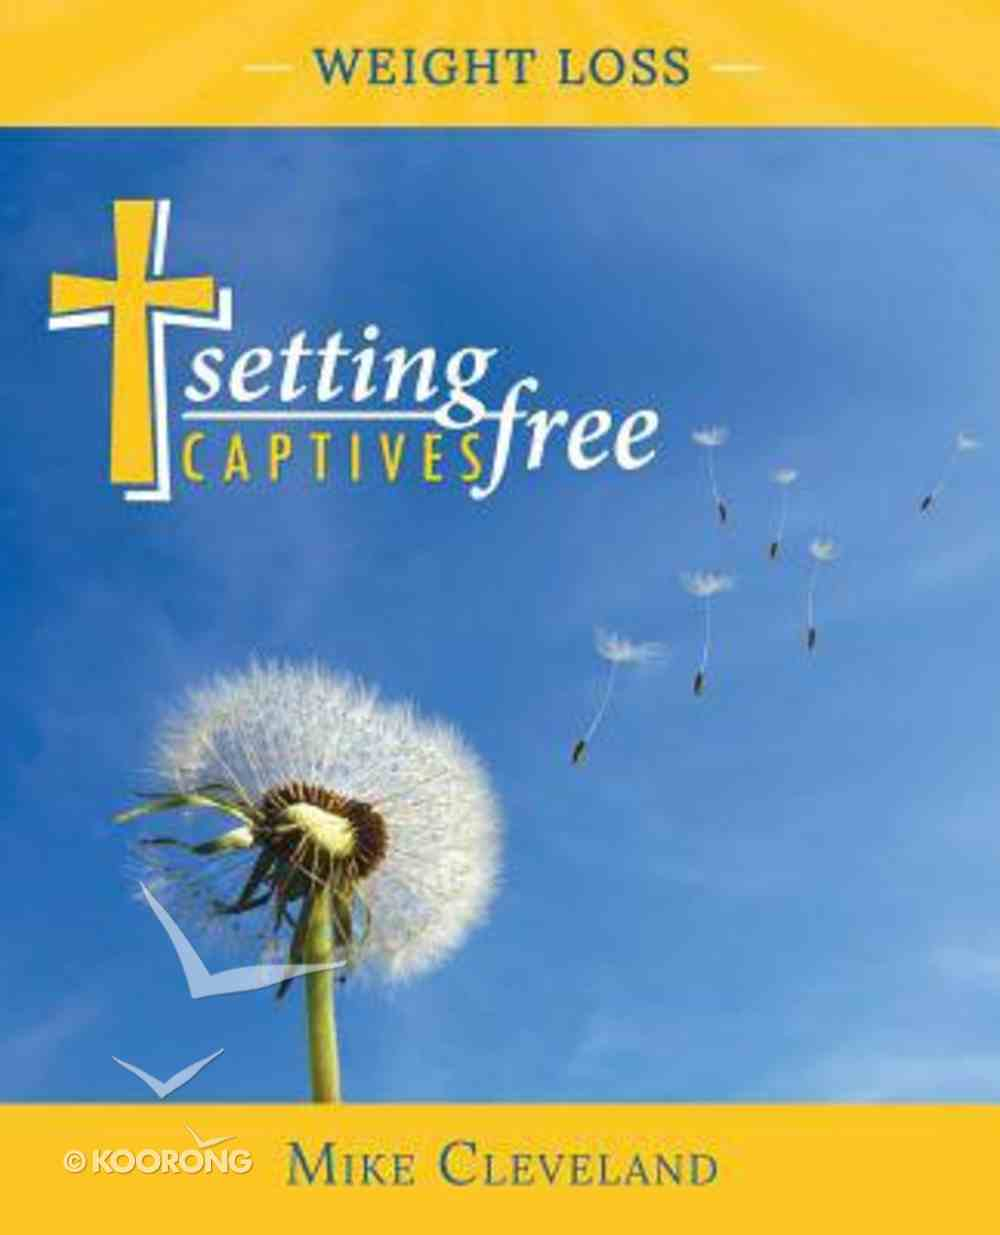 Setting Captives Free: Weight Loss Paperback